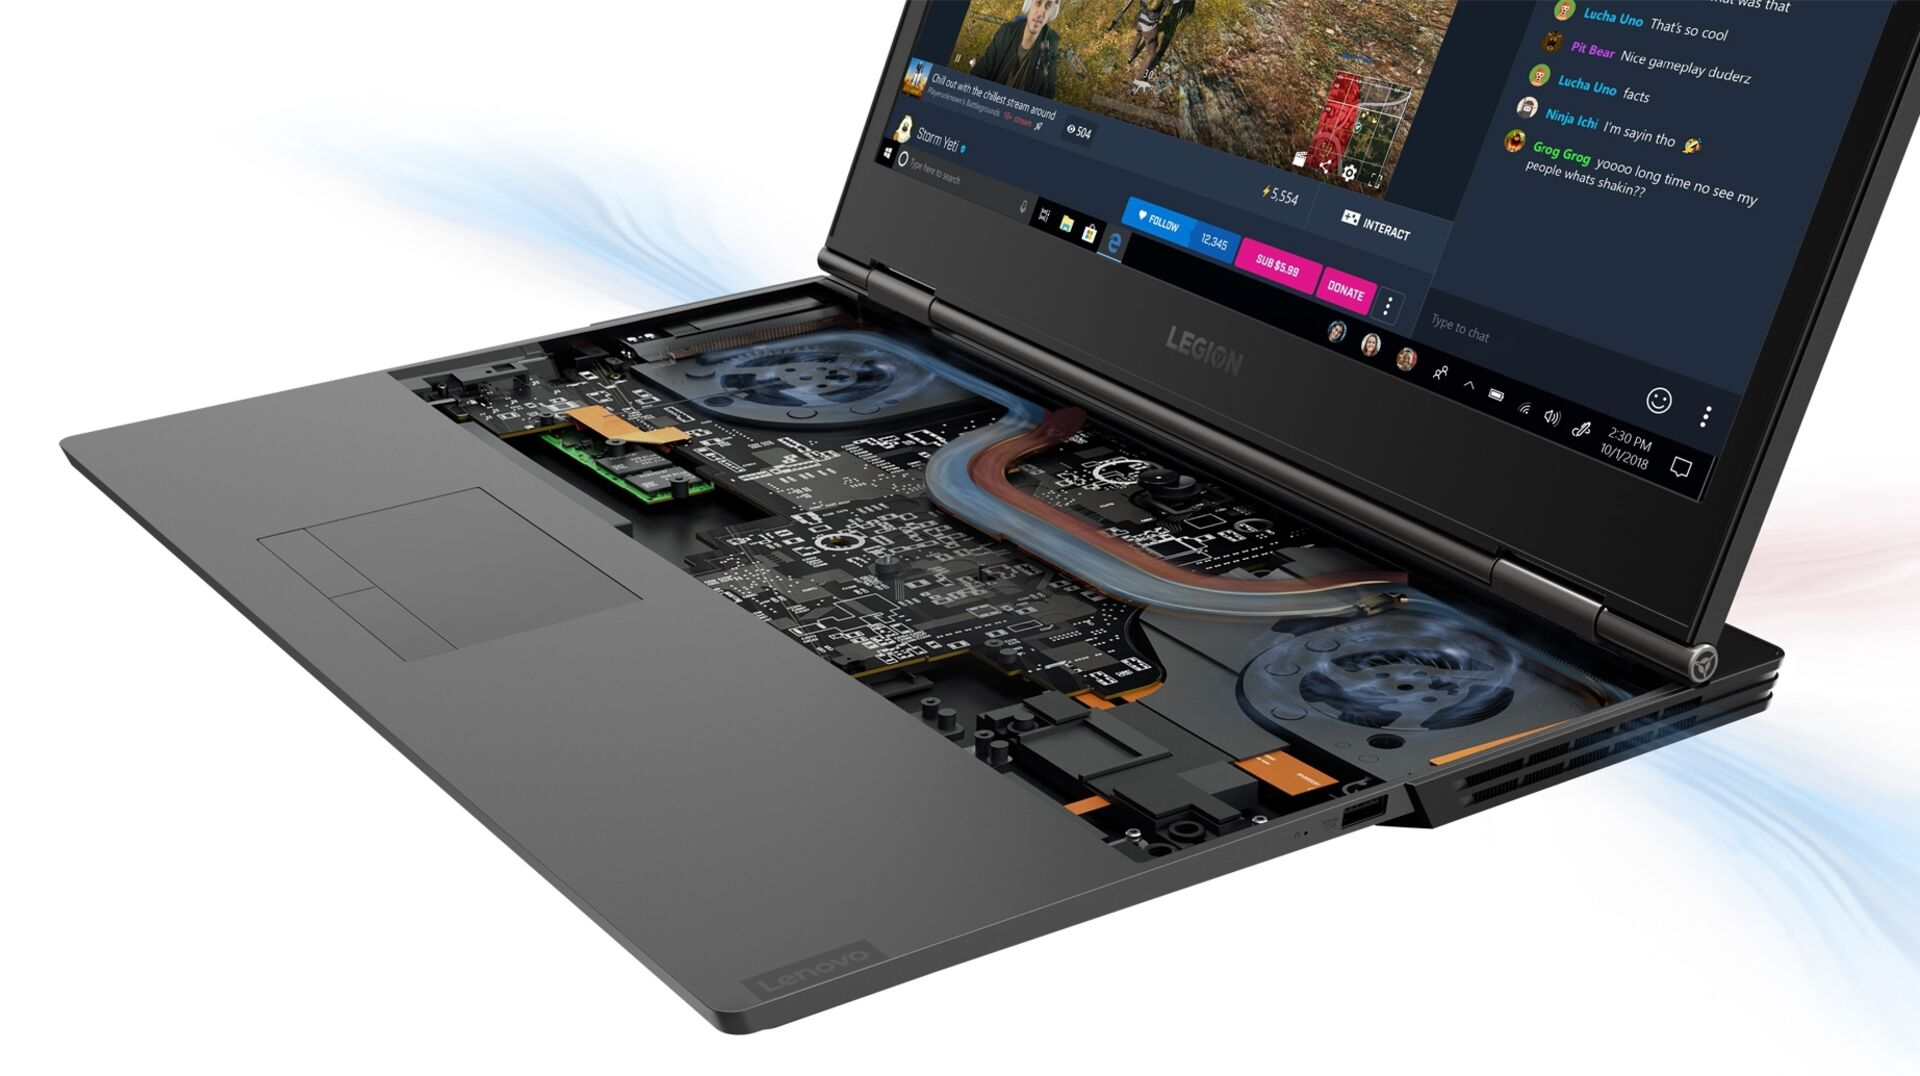 Best gaming laptops revealed at CES 2019: RTX graphics, 8th